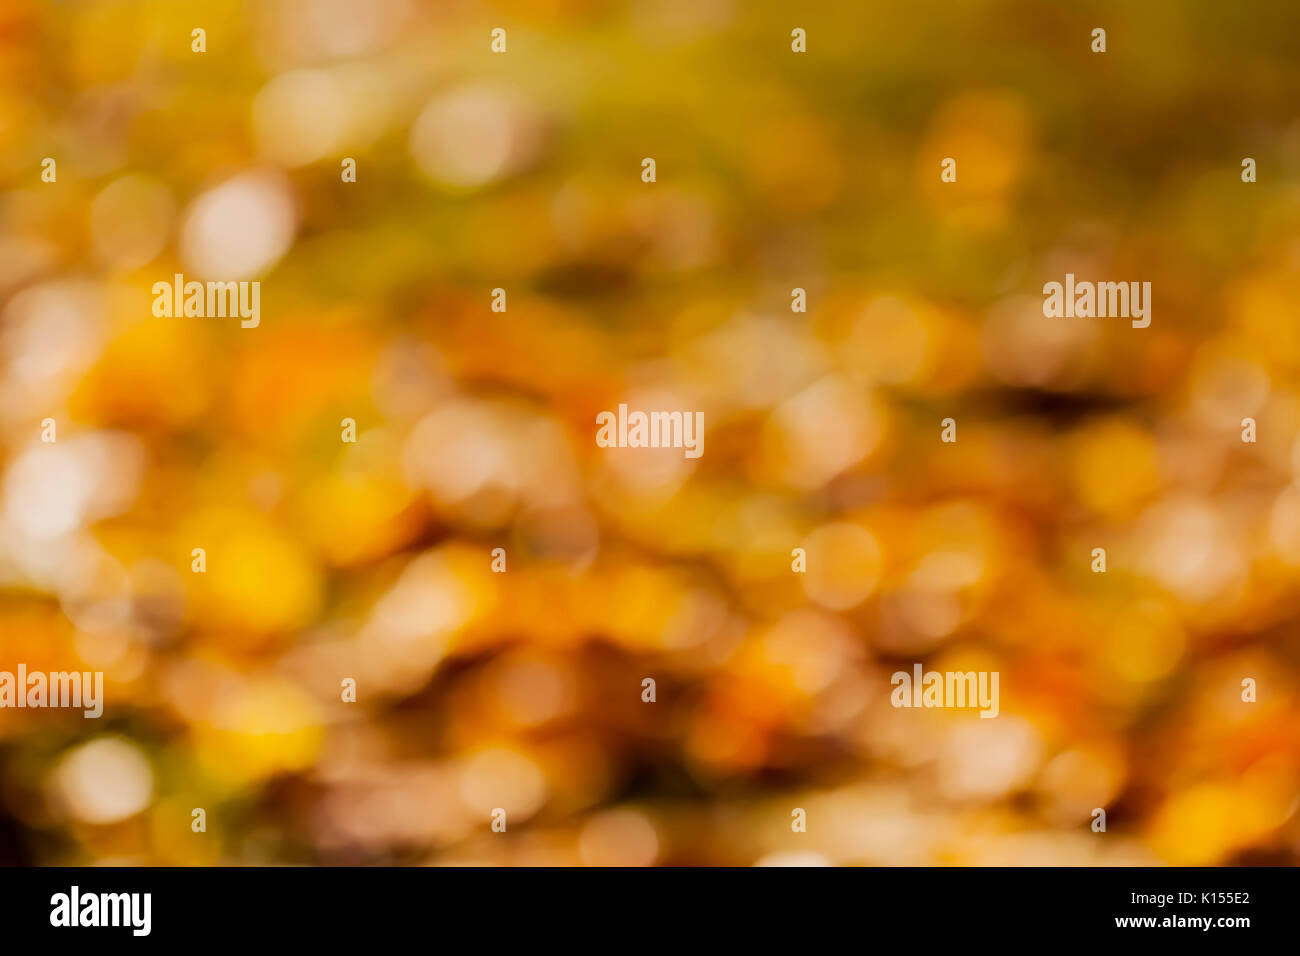 Natural Blur Golden Bokeh Leaf Wallpaper Autumn Background